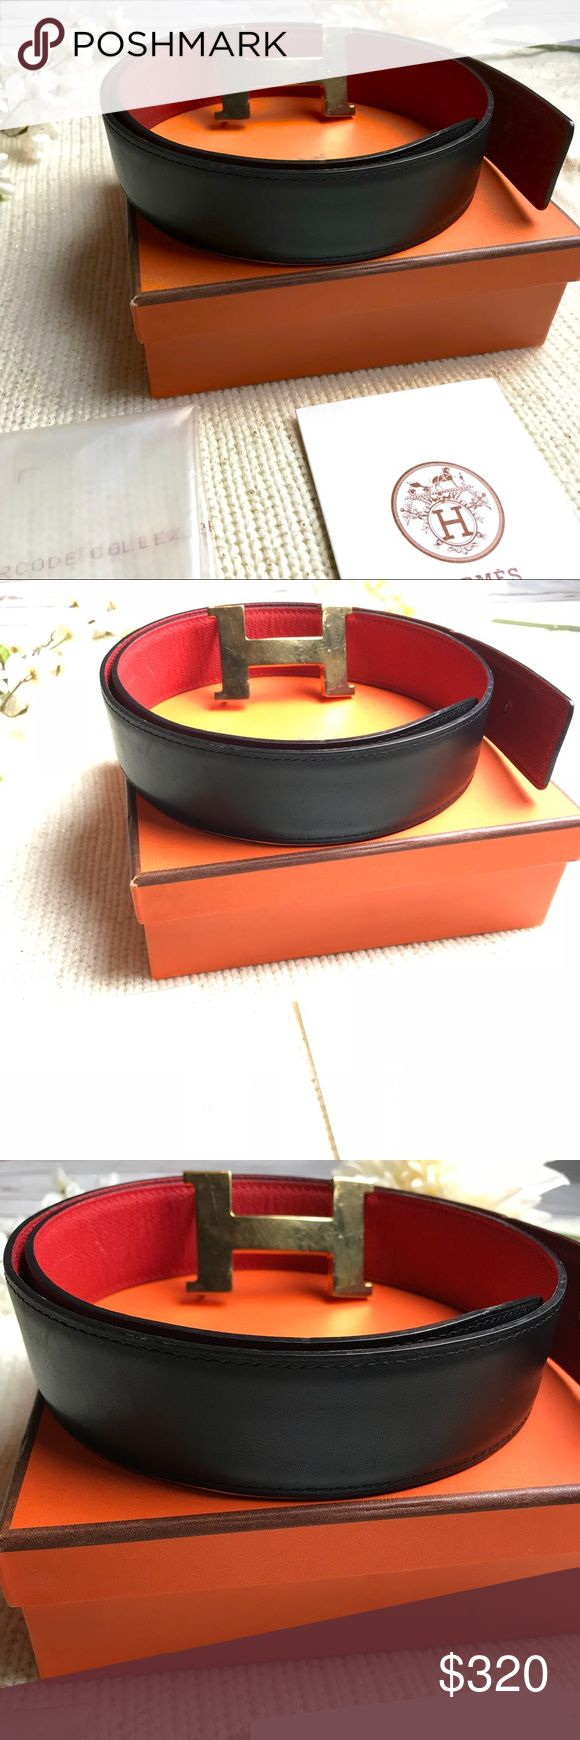 Hermès H Belt Buckle Reversible Leather Strap 32mm Hermès H Belt Buckle Reversible Leather Strap 32mm.  Minor scratches on the H buckle as shown in pictures.  Otherwise, in really great condition. Hermes Accessories Belts